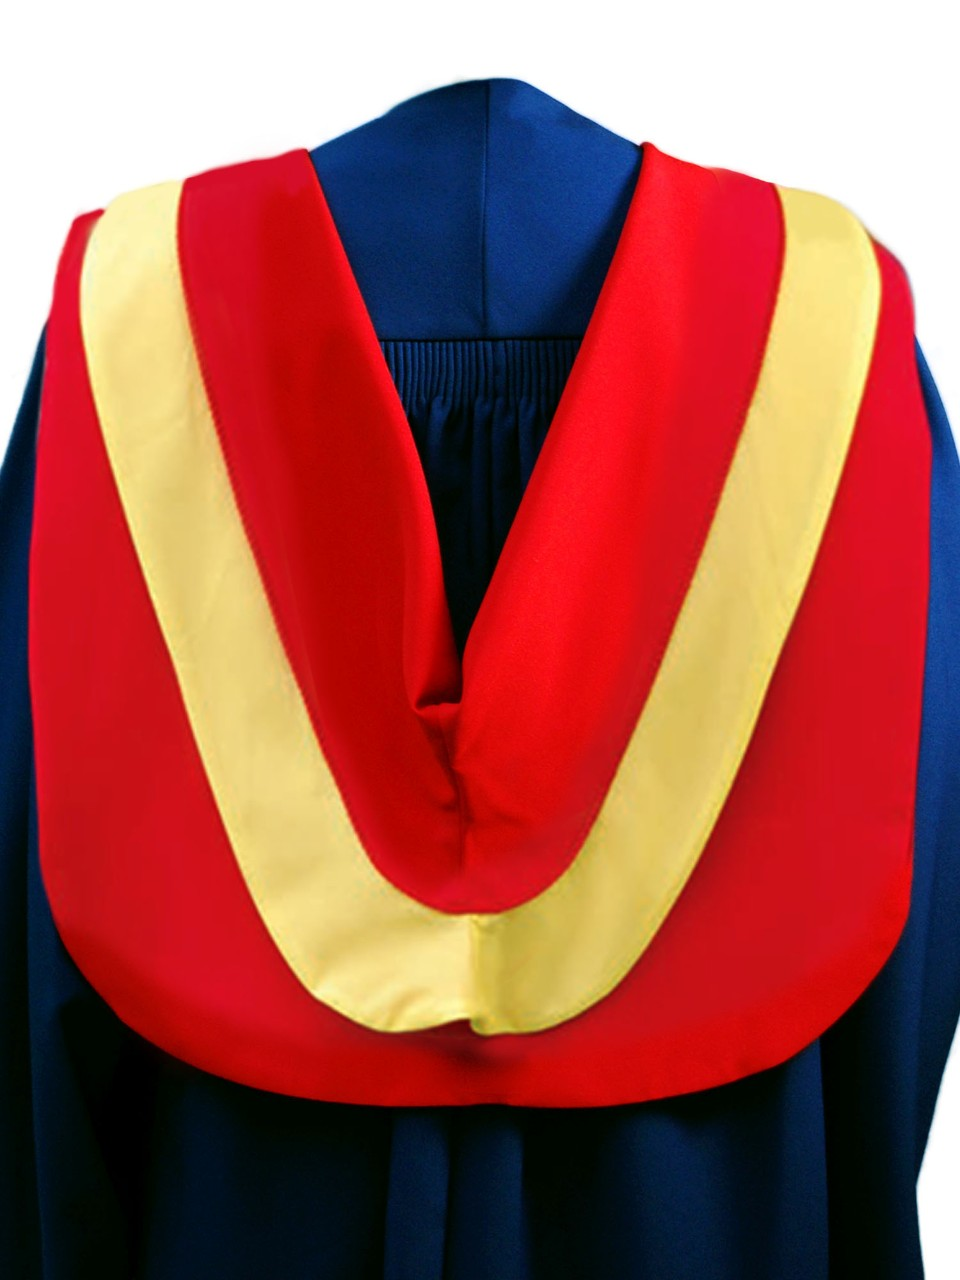 The Master of Public Health hood is red with wide yellow border, red cording